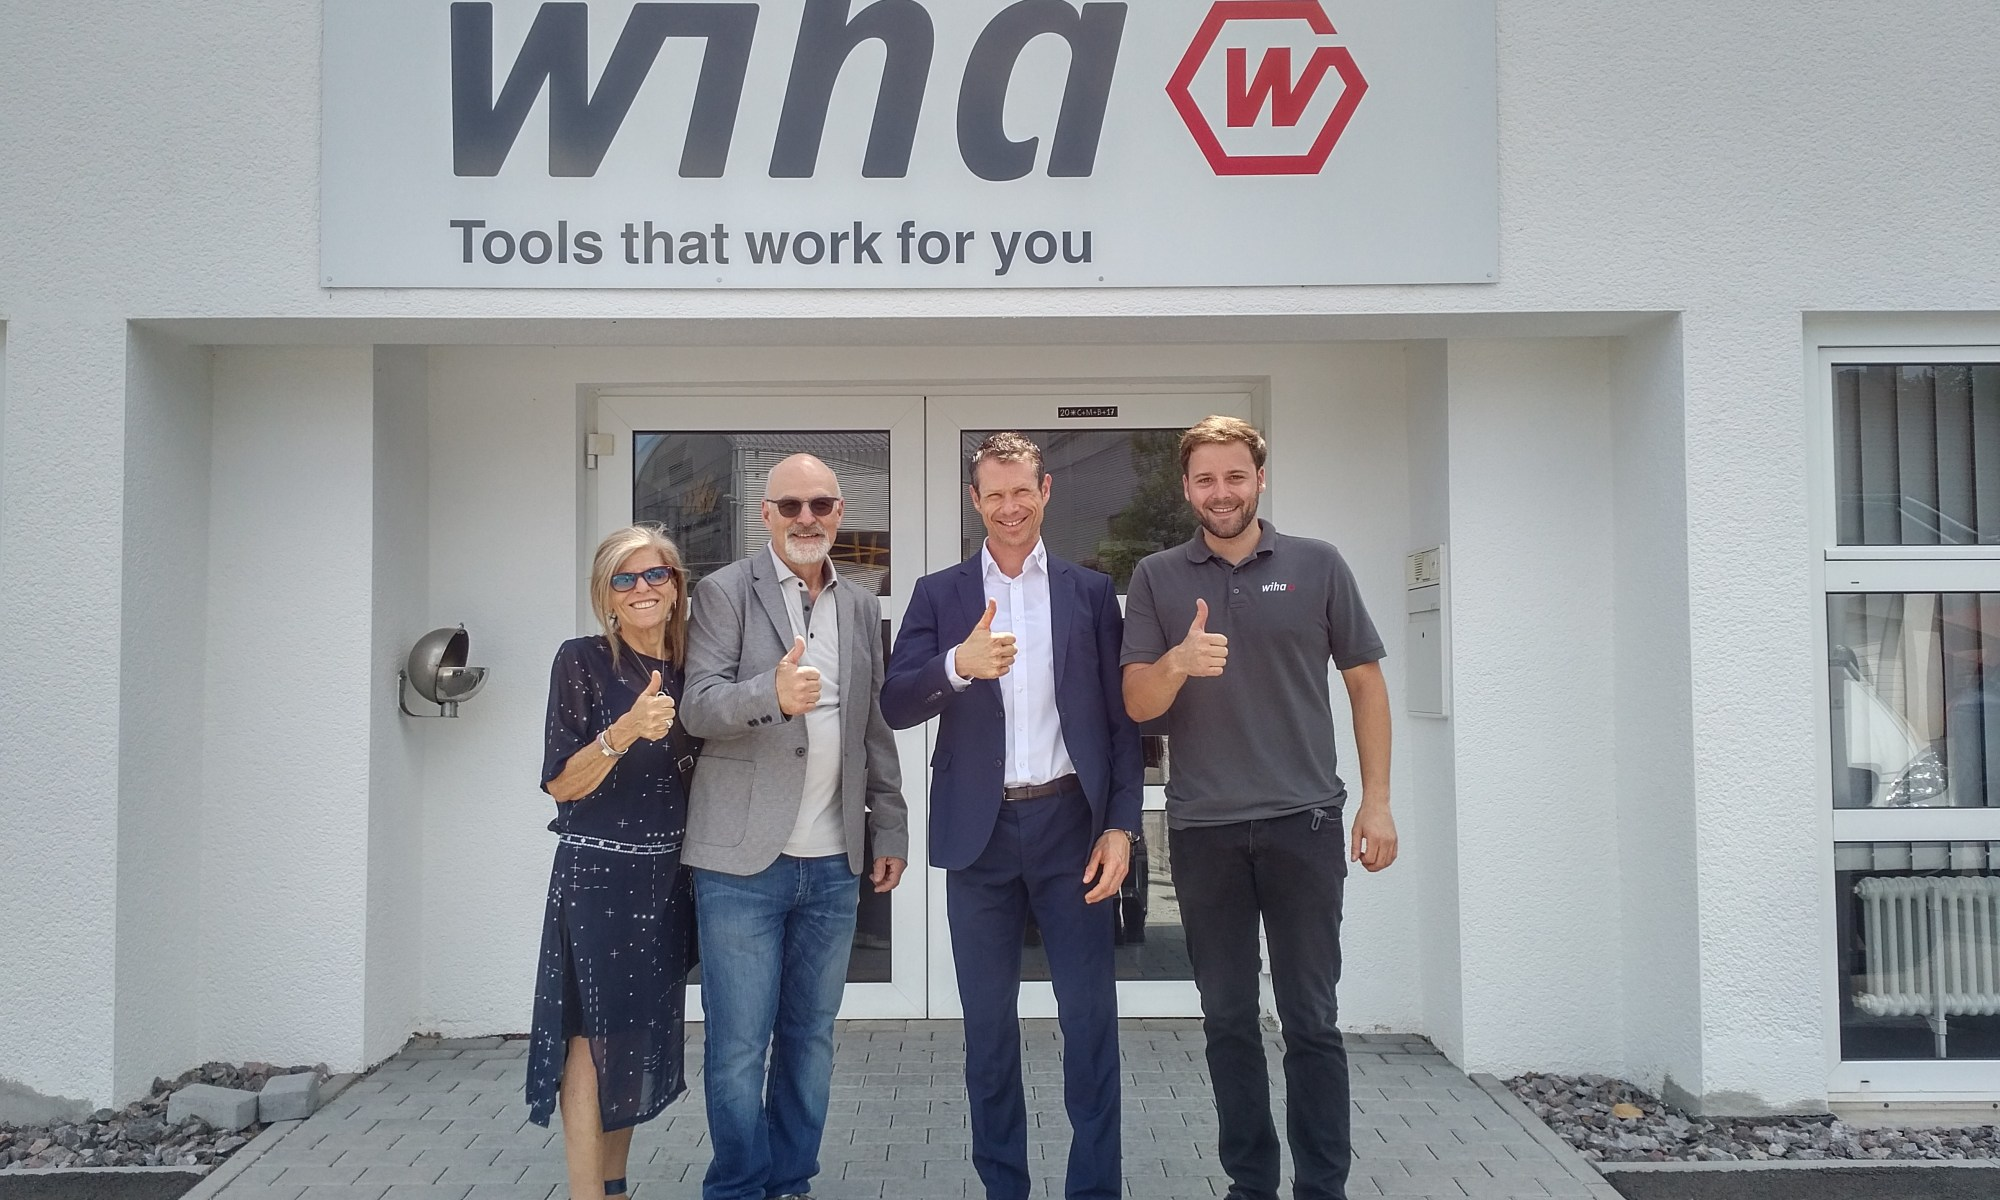 Atlas Tools posing in wiha germany